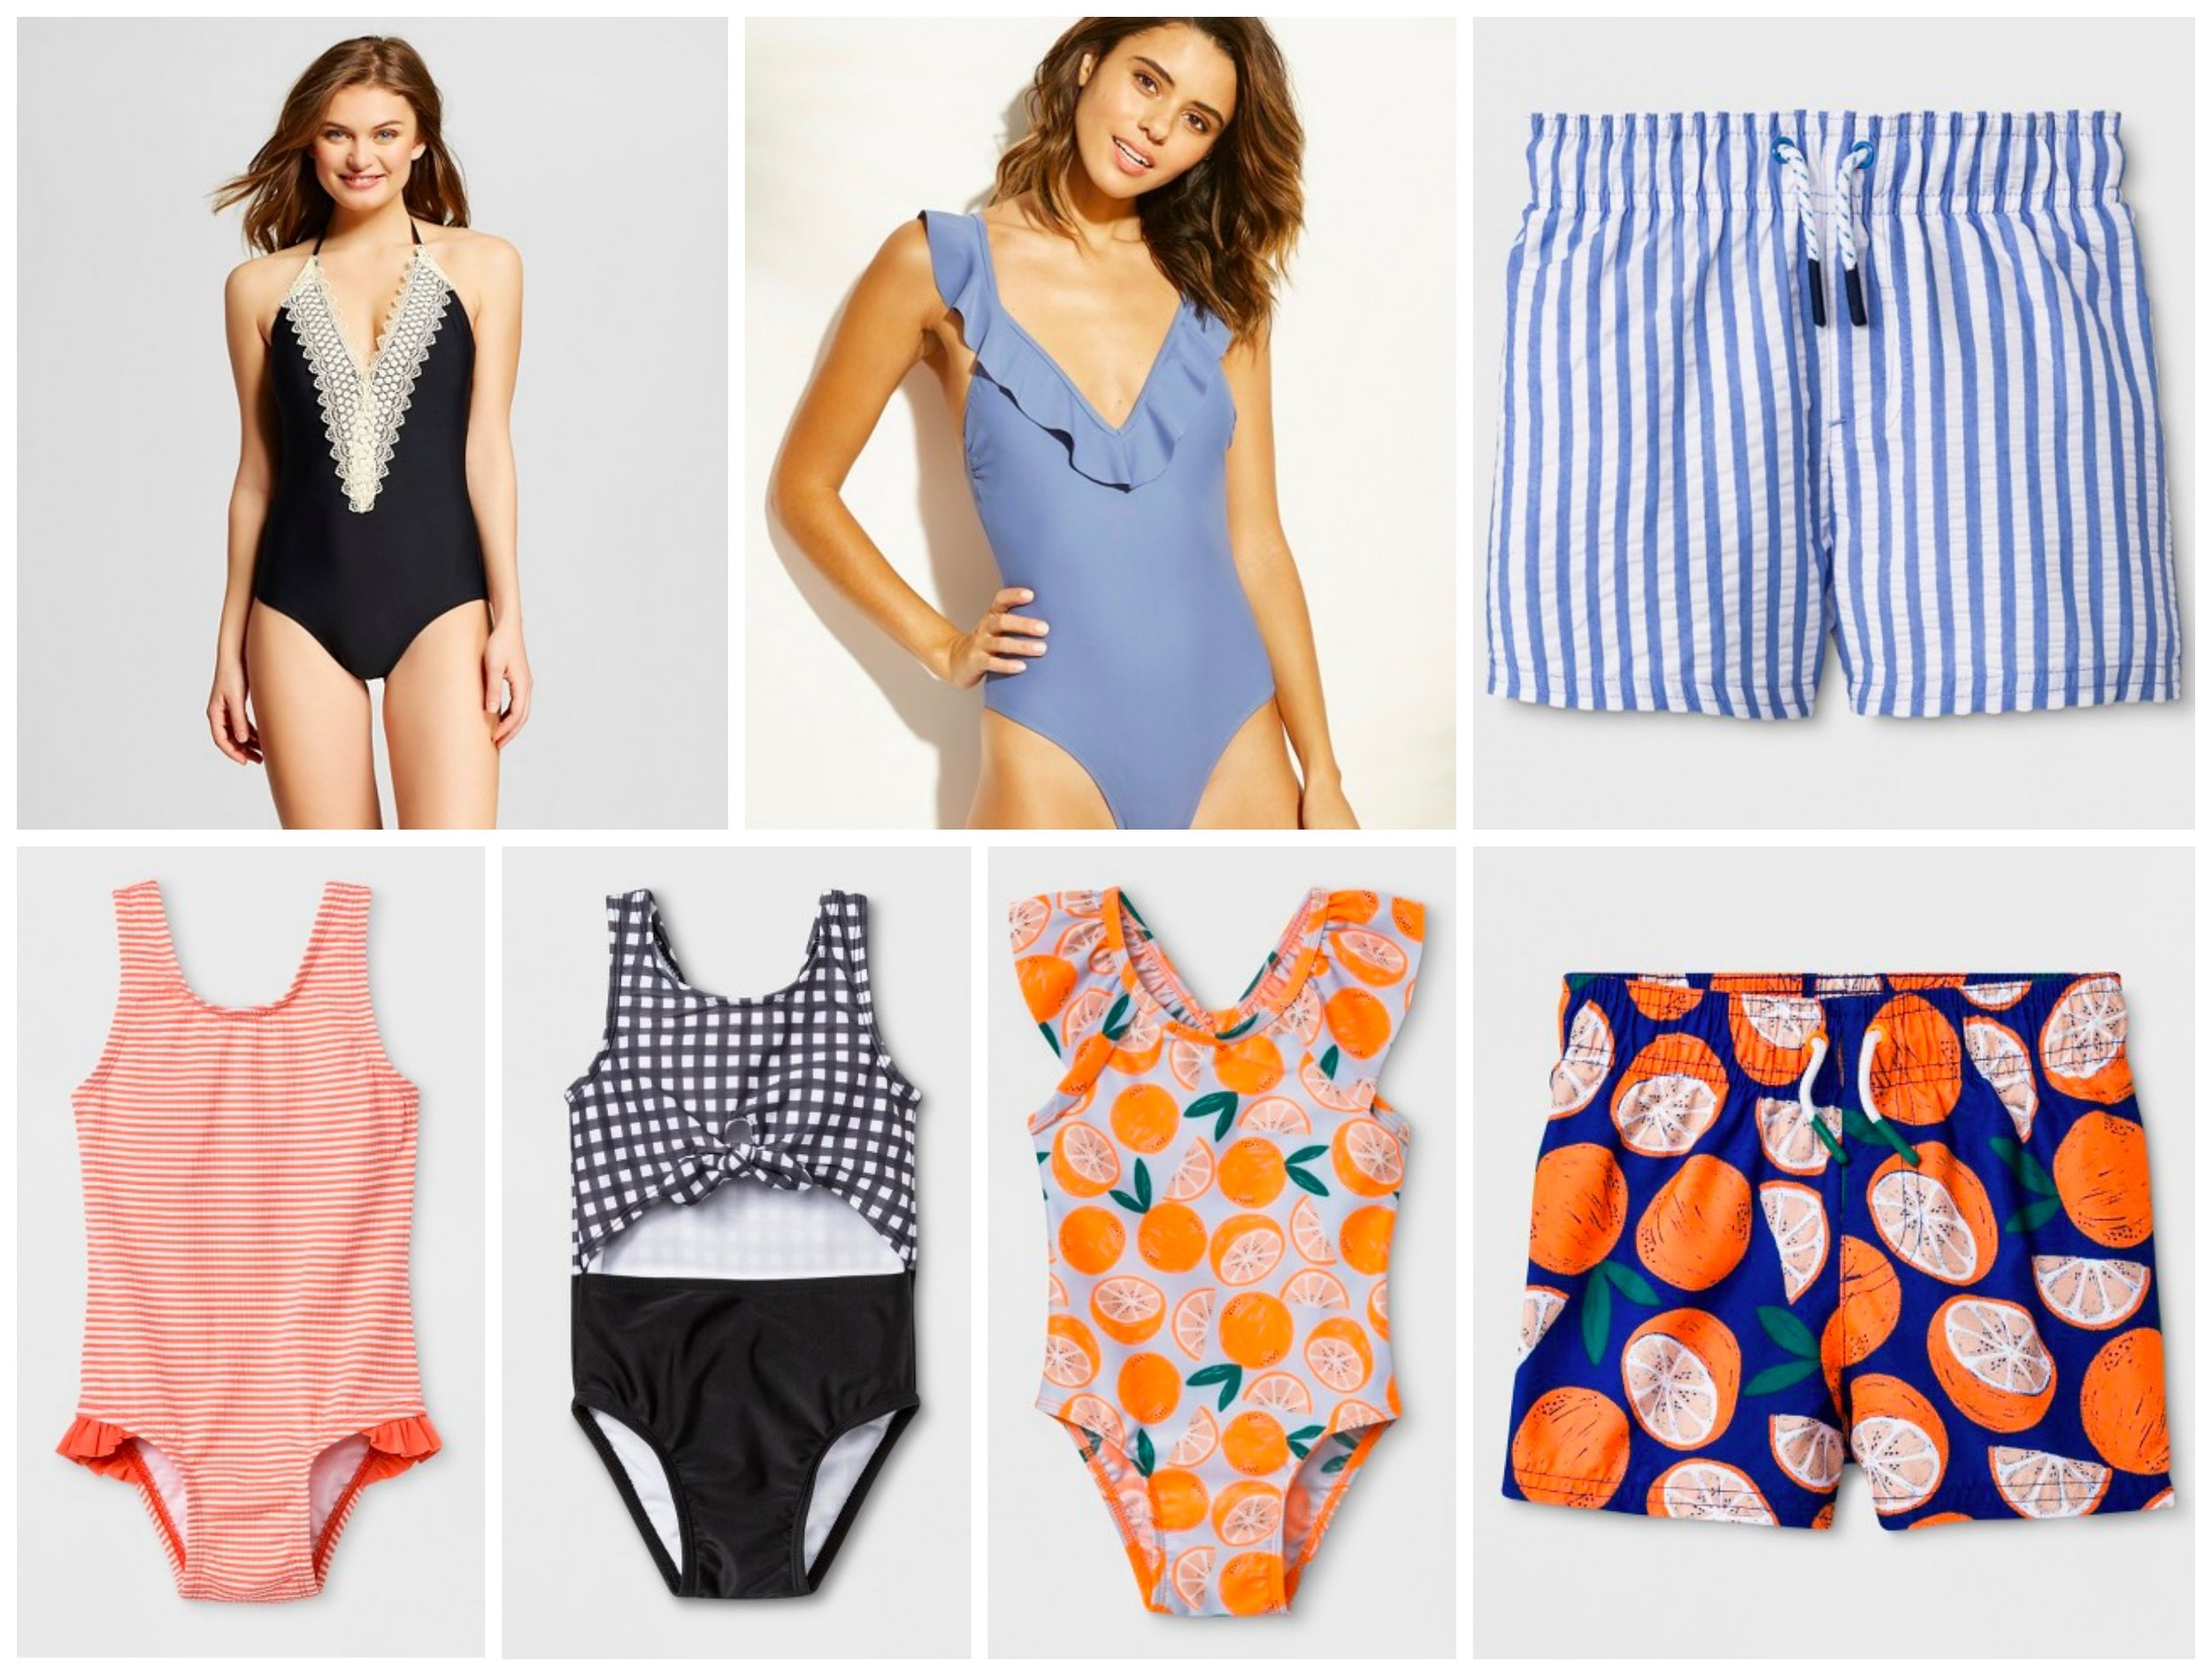 04811d26f4059 BOGO 50% OFF SWIMWEAR for the whole family! They have so many cute  swimsuits right now. I couldn't fit all of them here. Practicing some  serious self ...